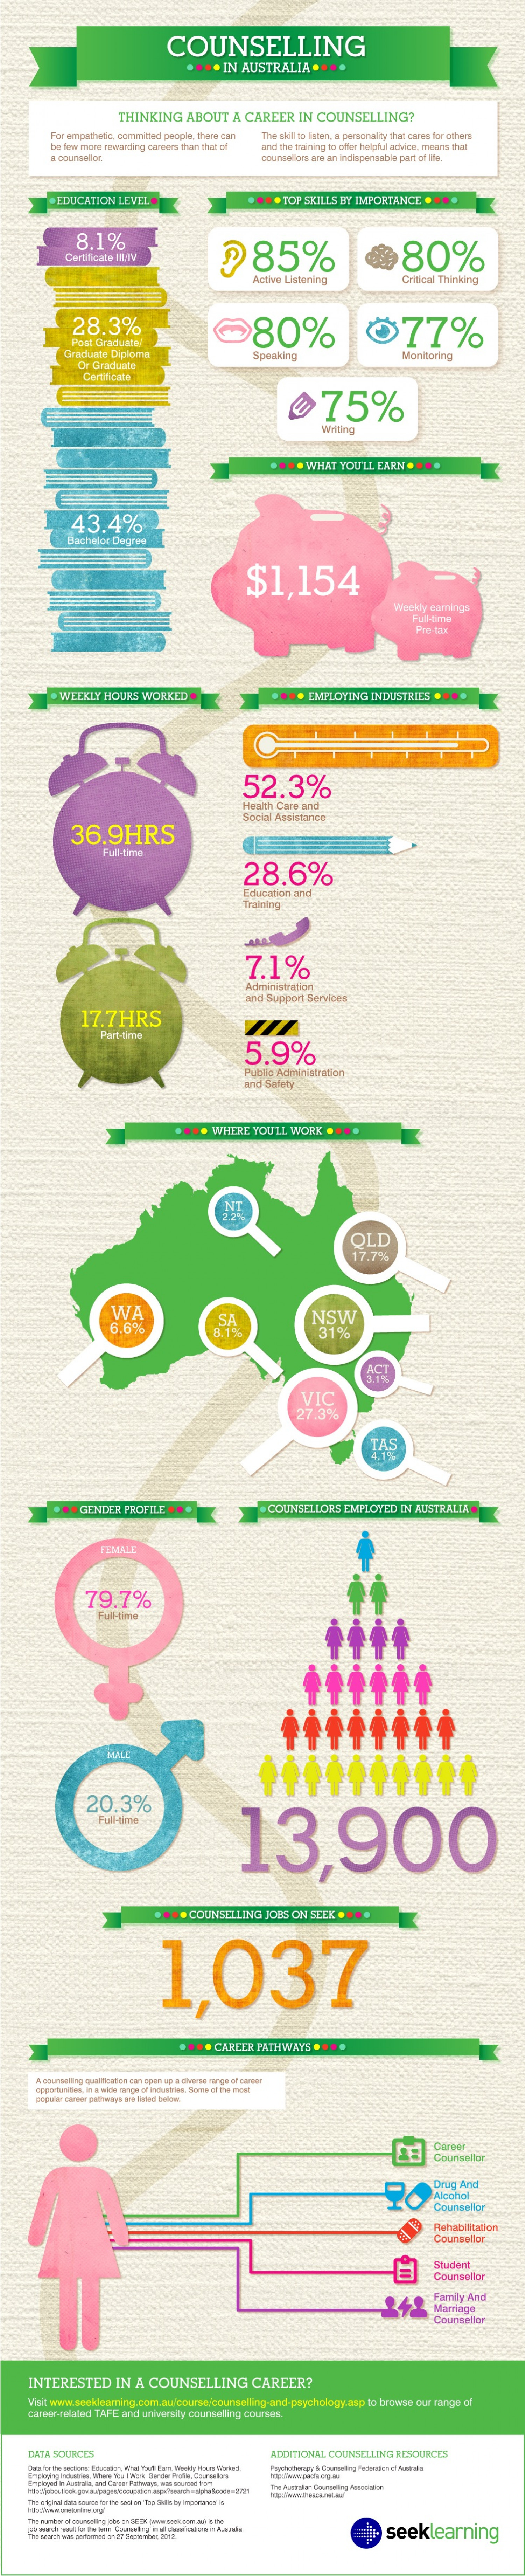 Counselling in Australia Infographic